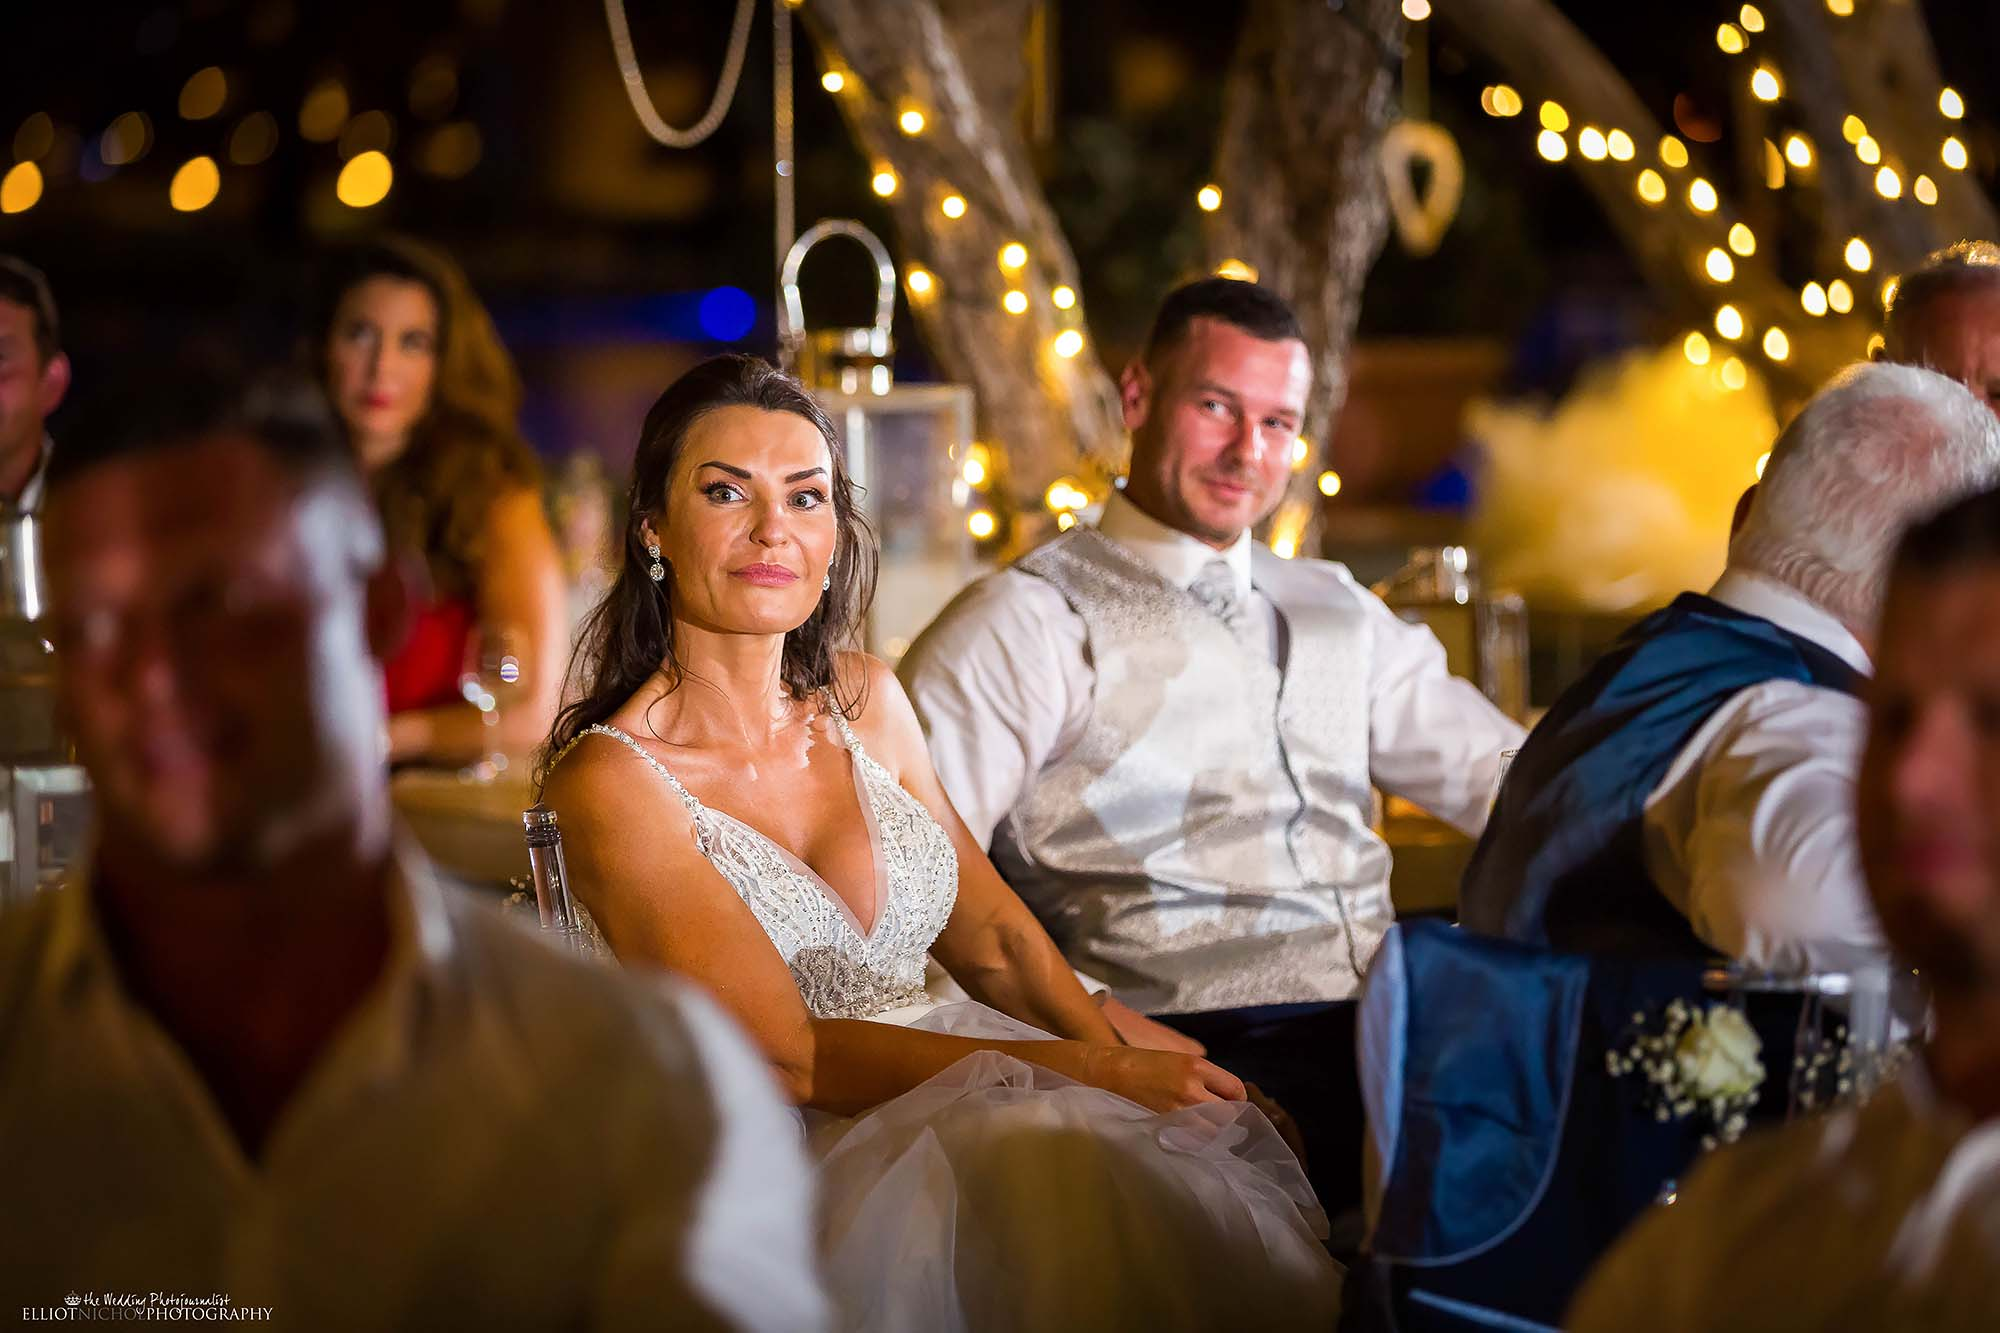 Candid photo of the bride and groom while they listen to their wedding speeches.